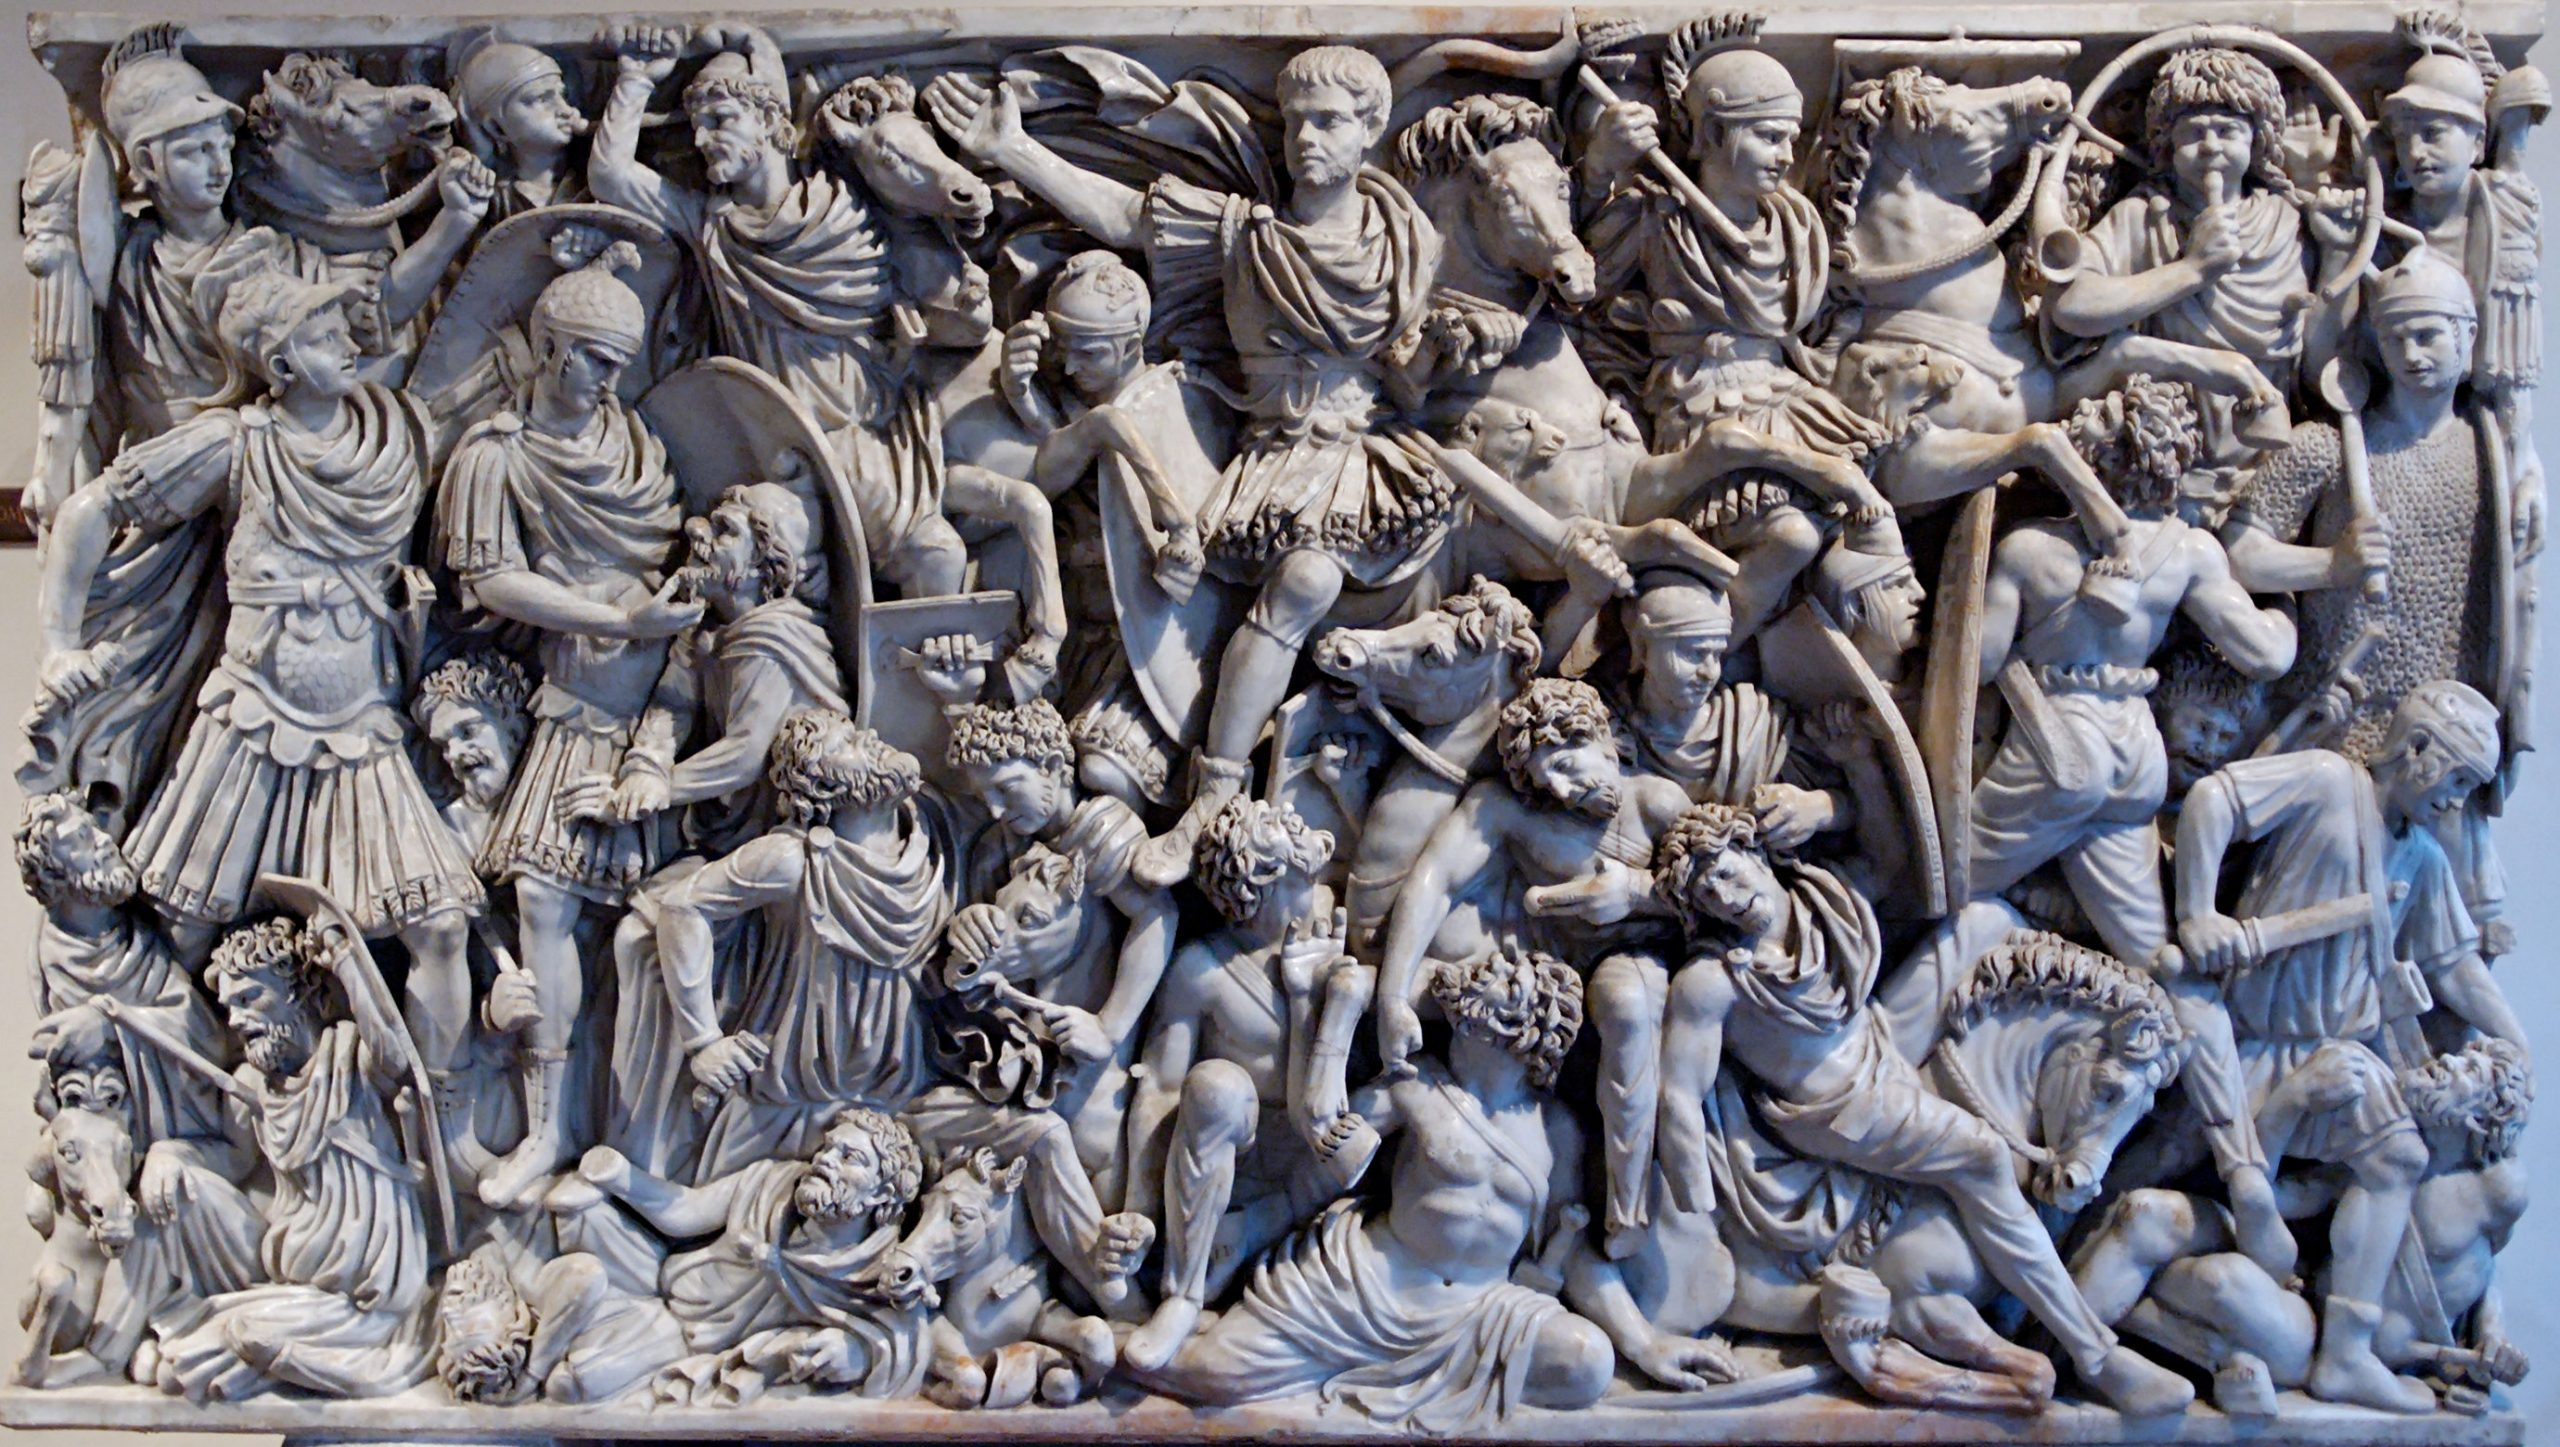 A depiction of a battle between the Goths and the Romans on the third century AD Grande Ludovisi Sarcophagus.